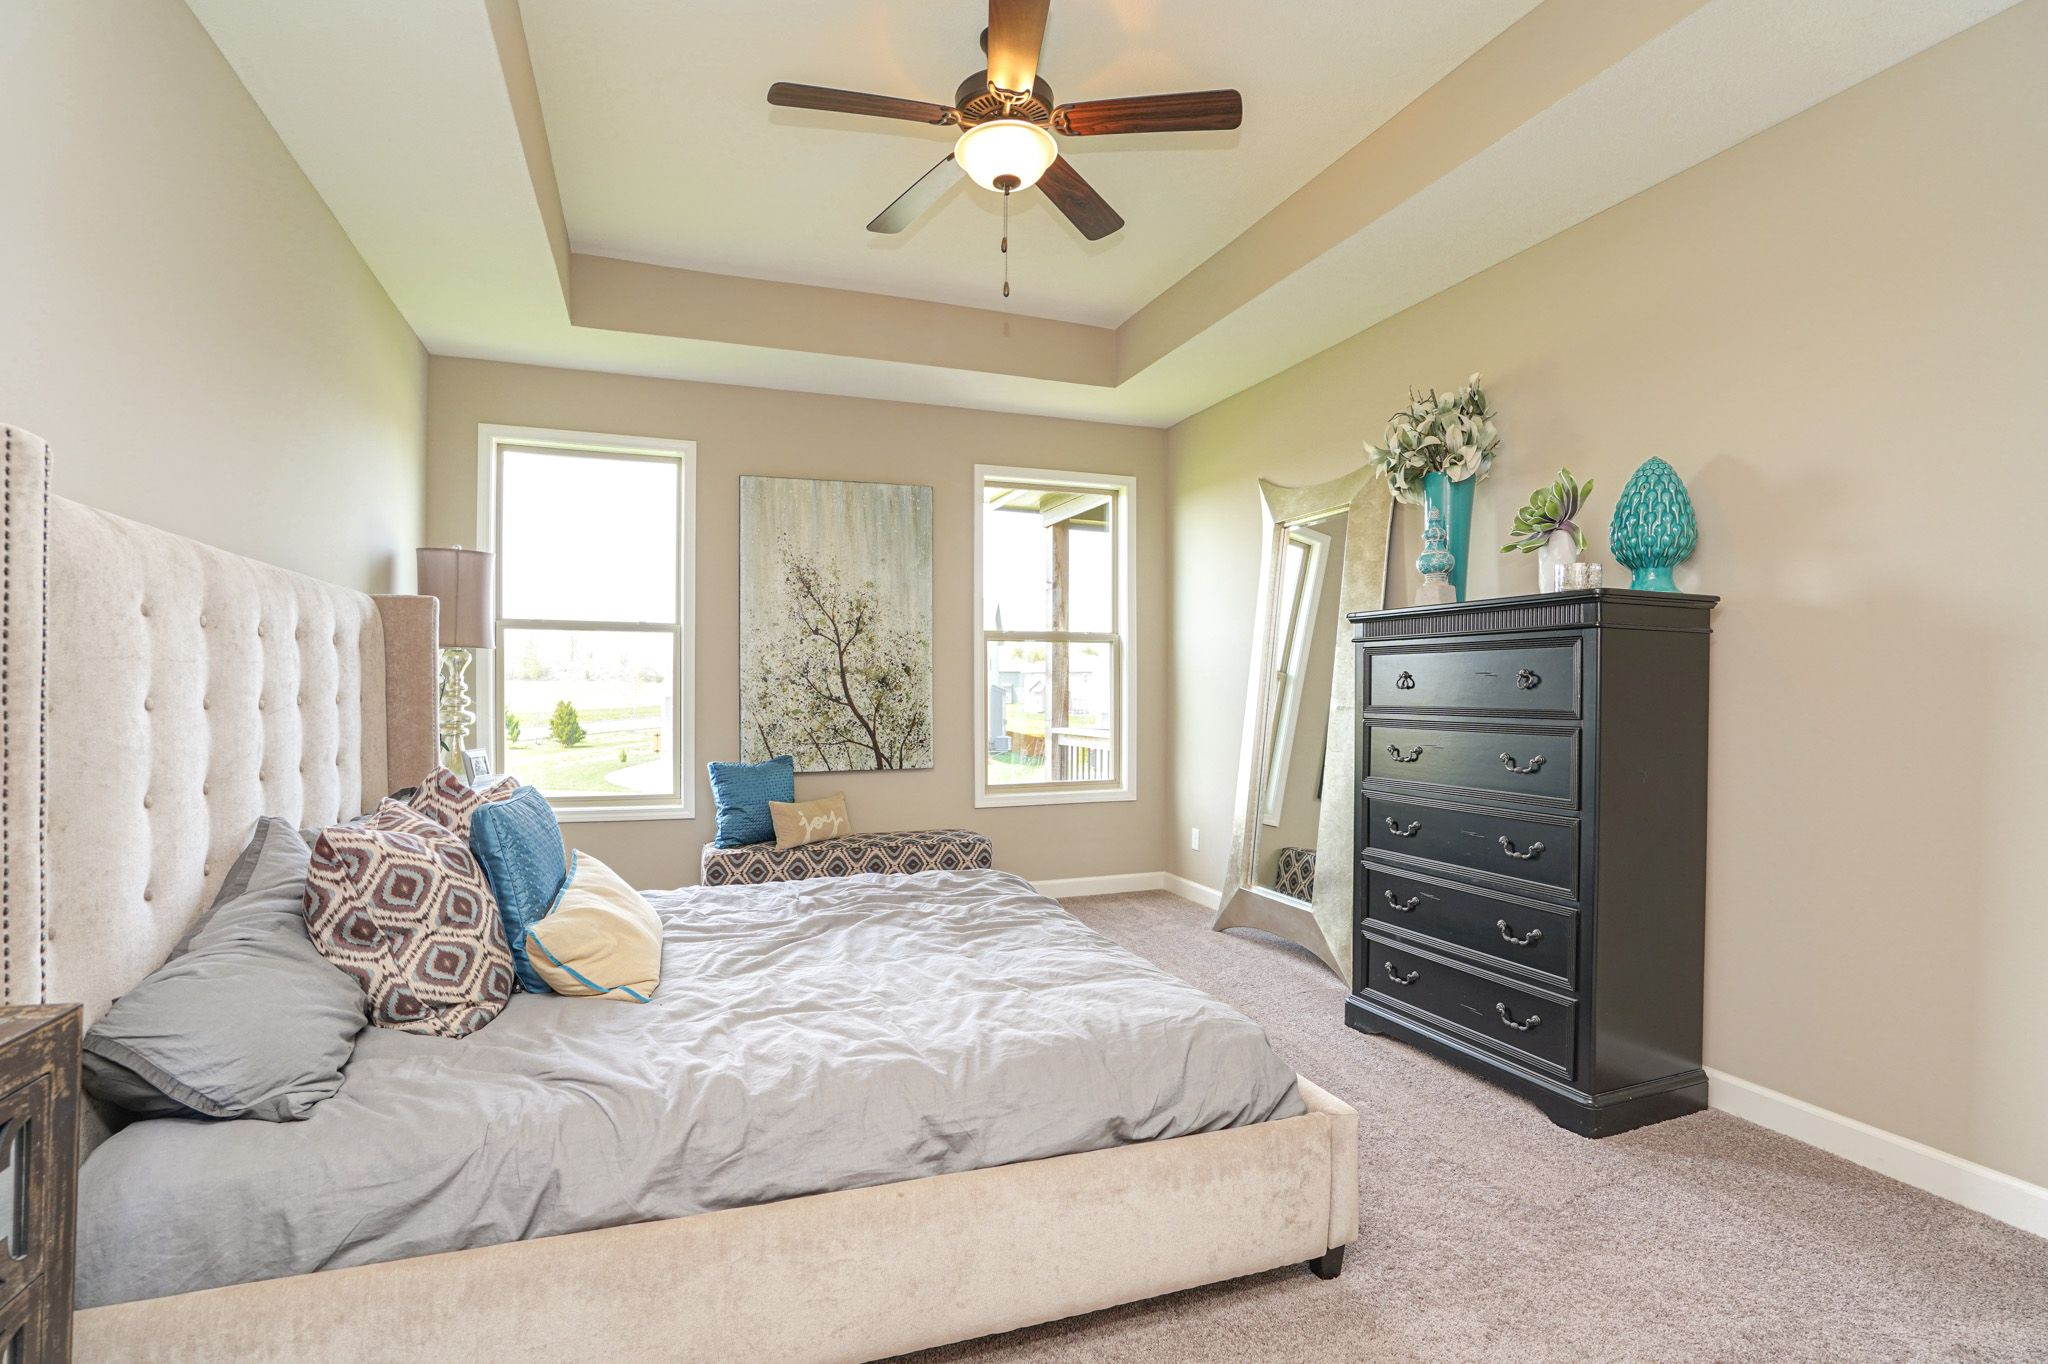 Bedroom featured in the Cypress - Care free By Summit Homes in Kansas City, MO